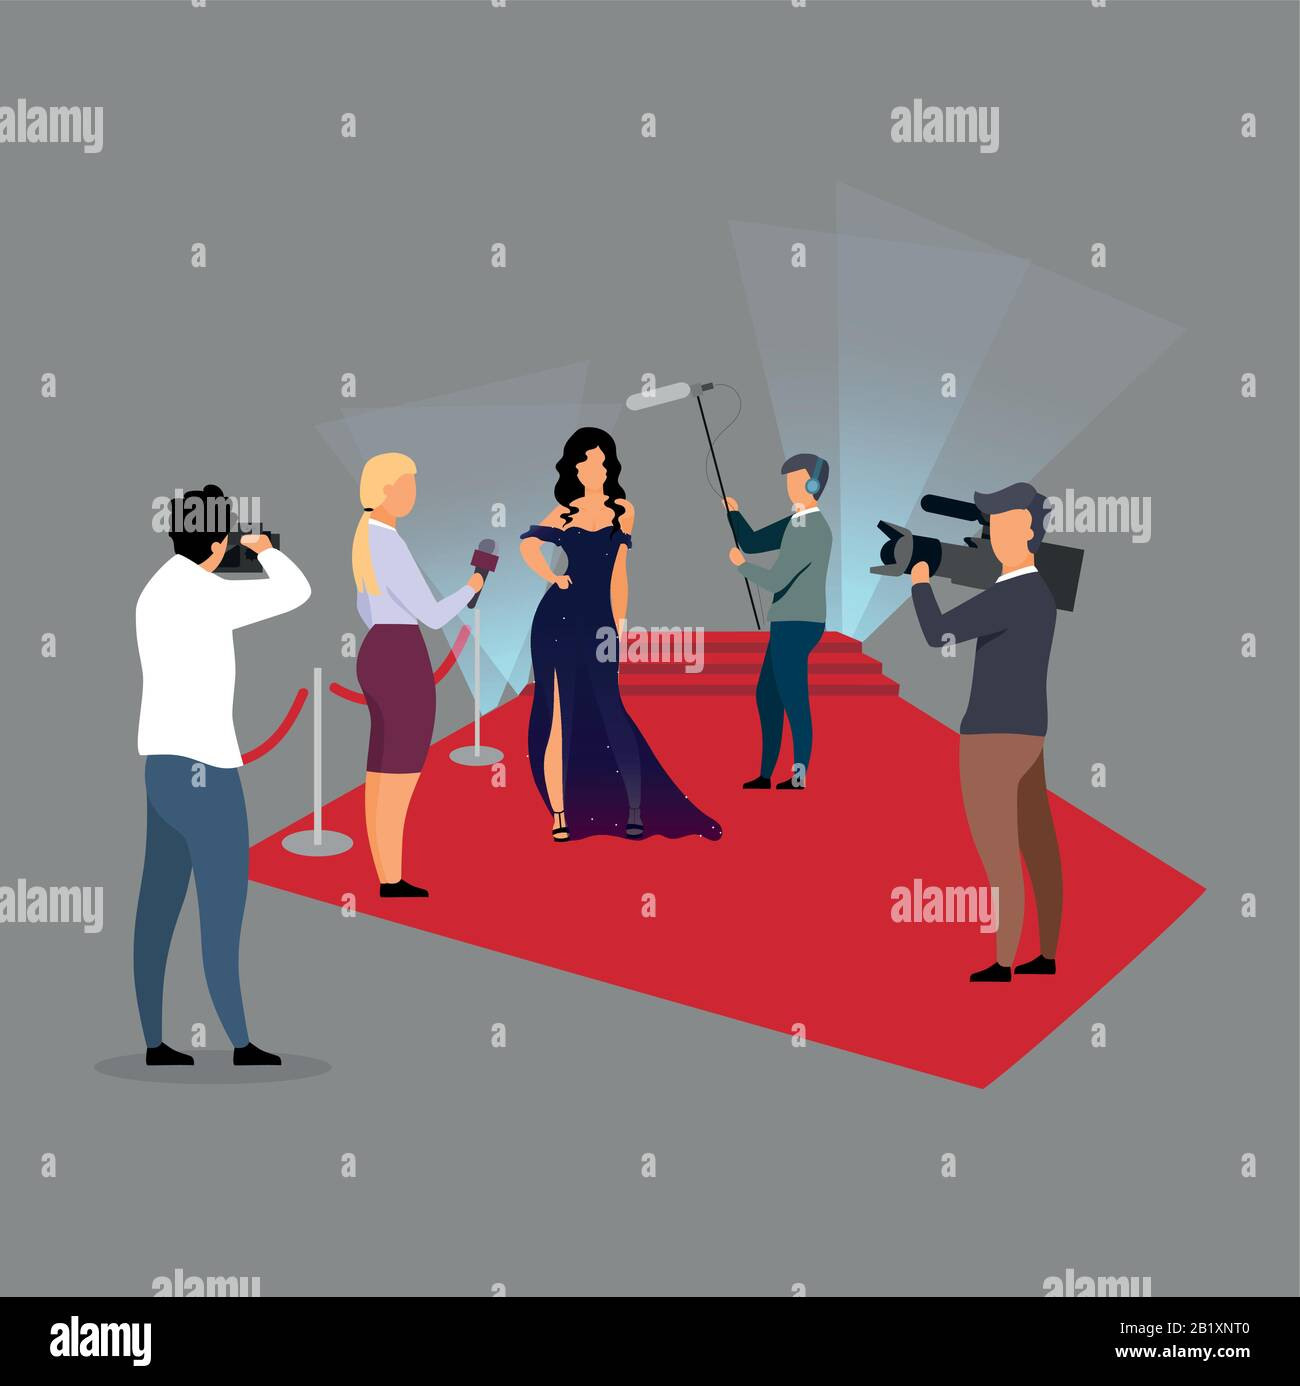 Red Carpet Ceremony Reportage Flat Vector Illustration Journalists Interviewing Super Star Celebrity Cartoon Characters Reporters Paparazzi Stock Vector Image Art Alamy